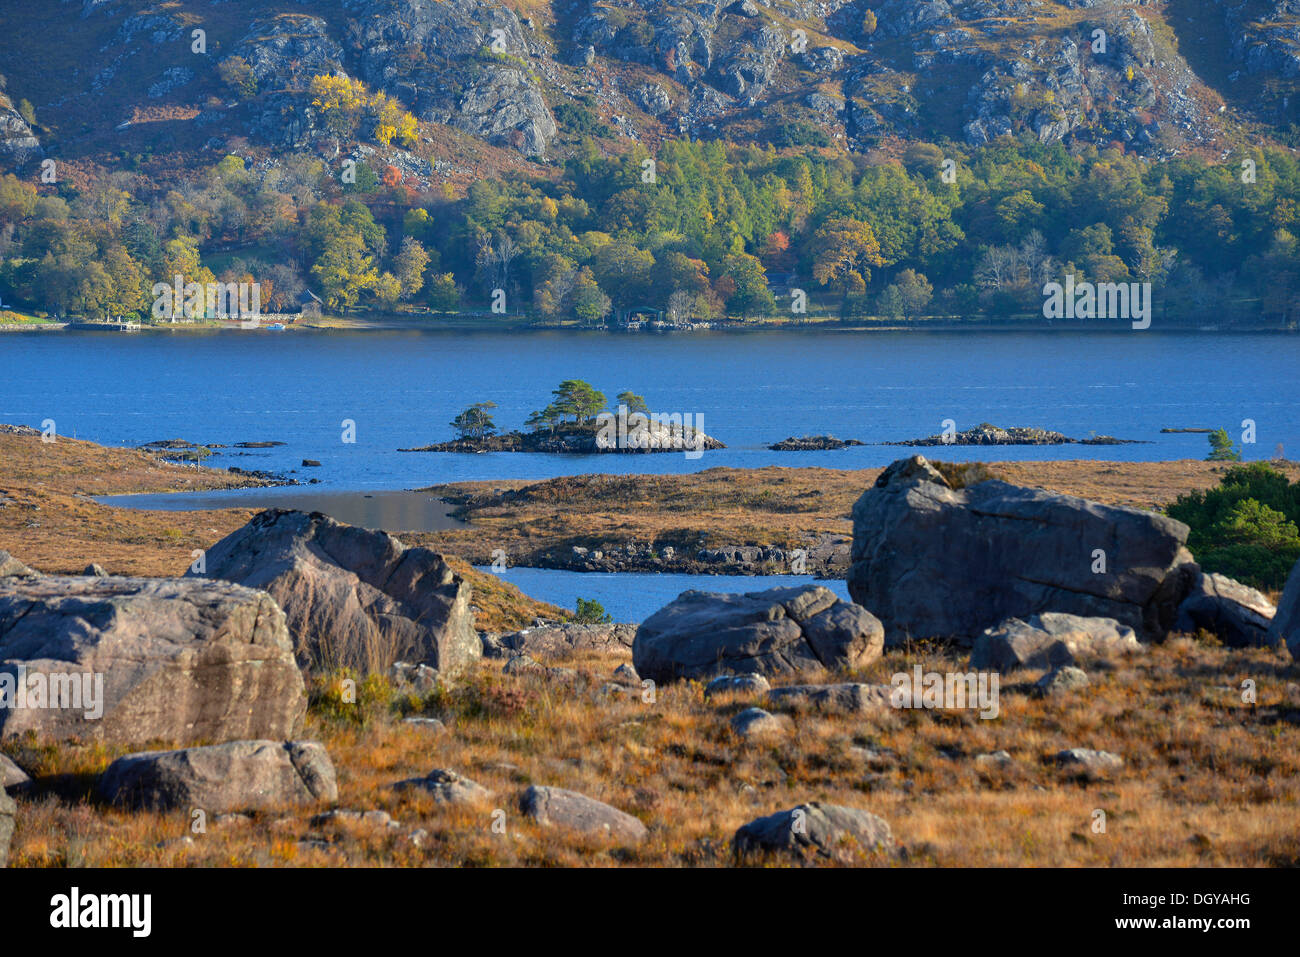 Loch Maree, Beinn Eighe National Nature Reserve, SNH, Kinlochewe, Scottish Highlands, Wester Ross, Scotland, United Kingdom - Stock Image